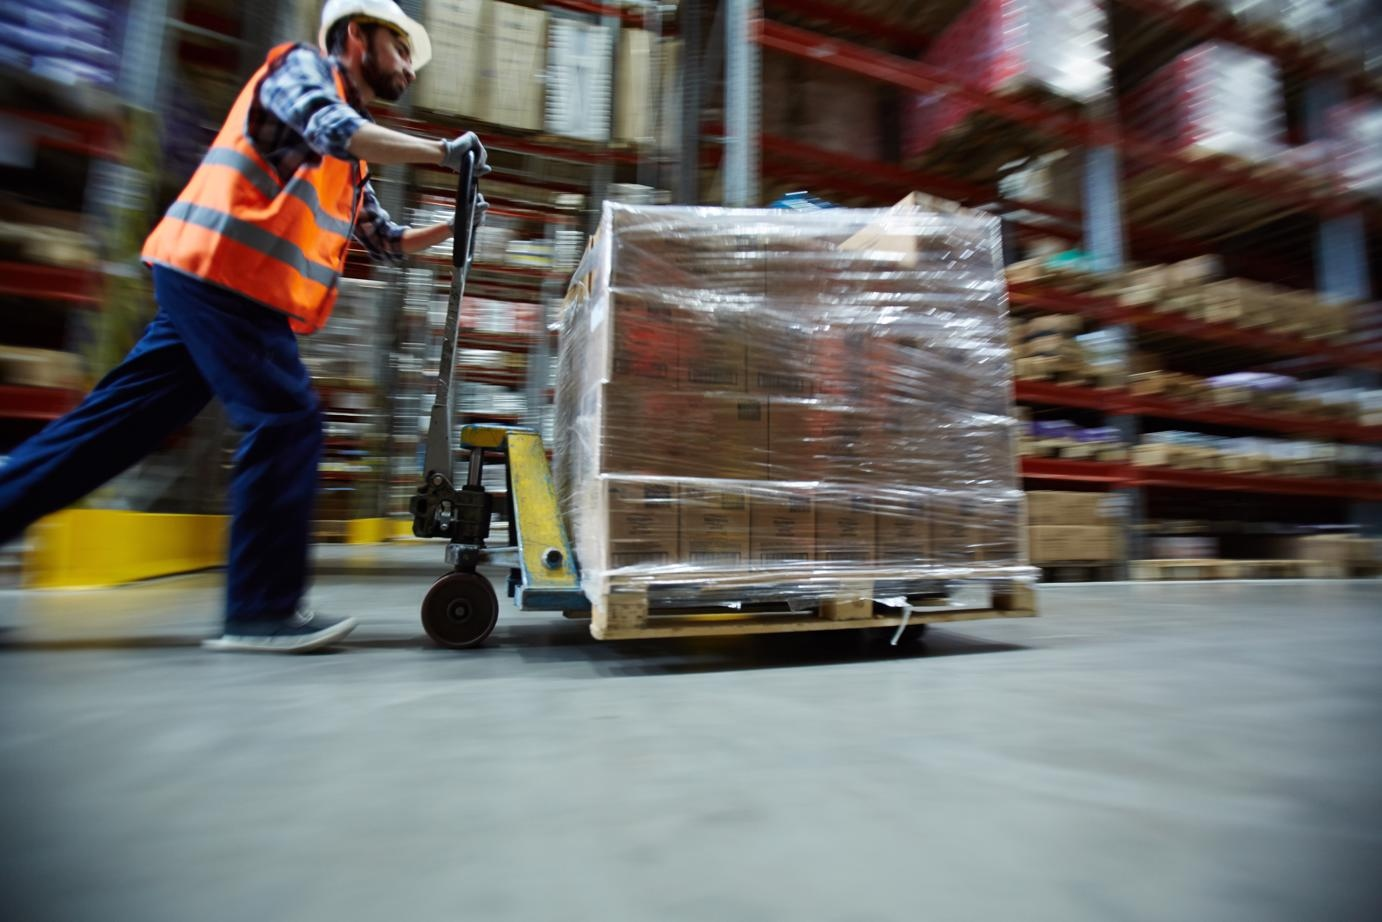 The Integrated Workforce in the Warehouse